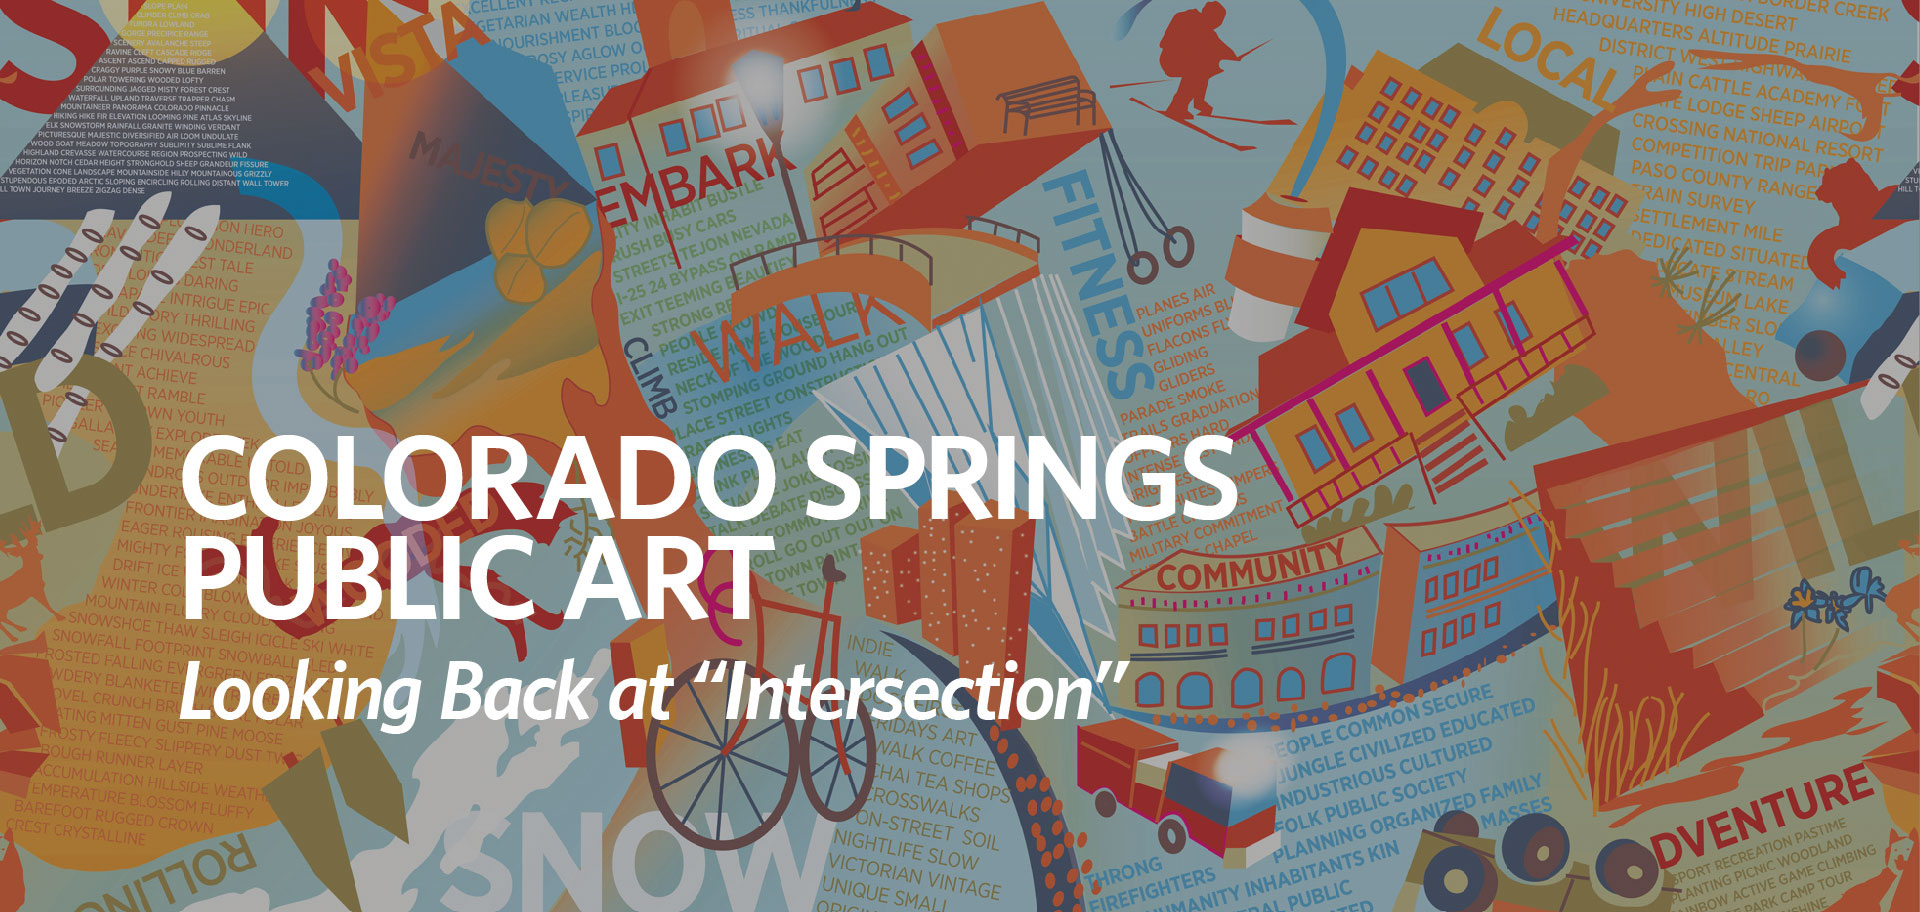 "colorado springs Colorado Springs Public Art: Looking Back at ""Intersection"" intersection fi"